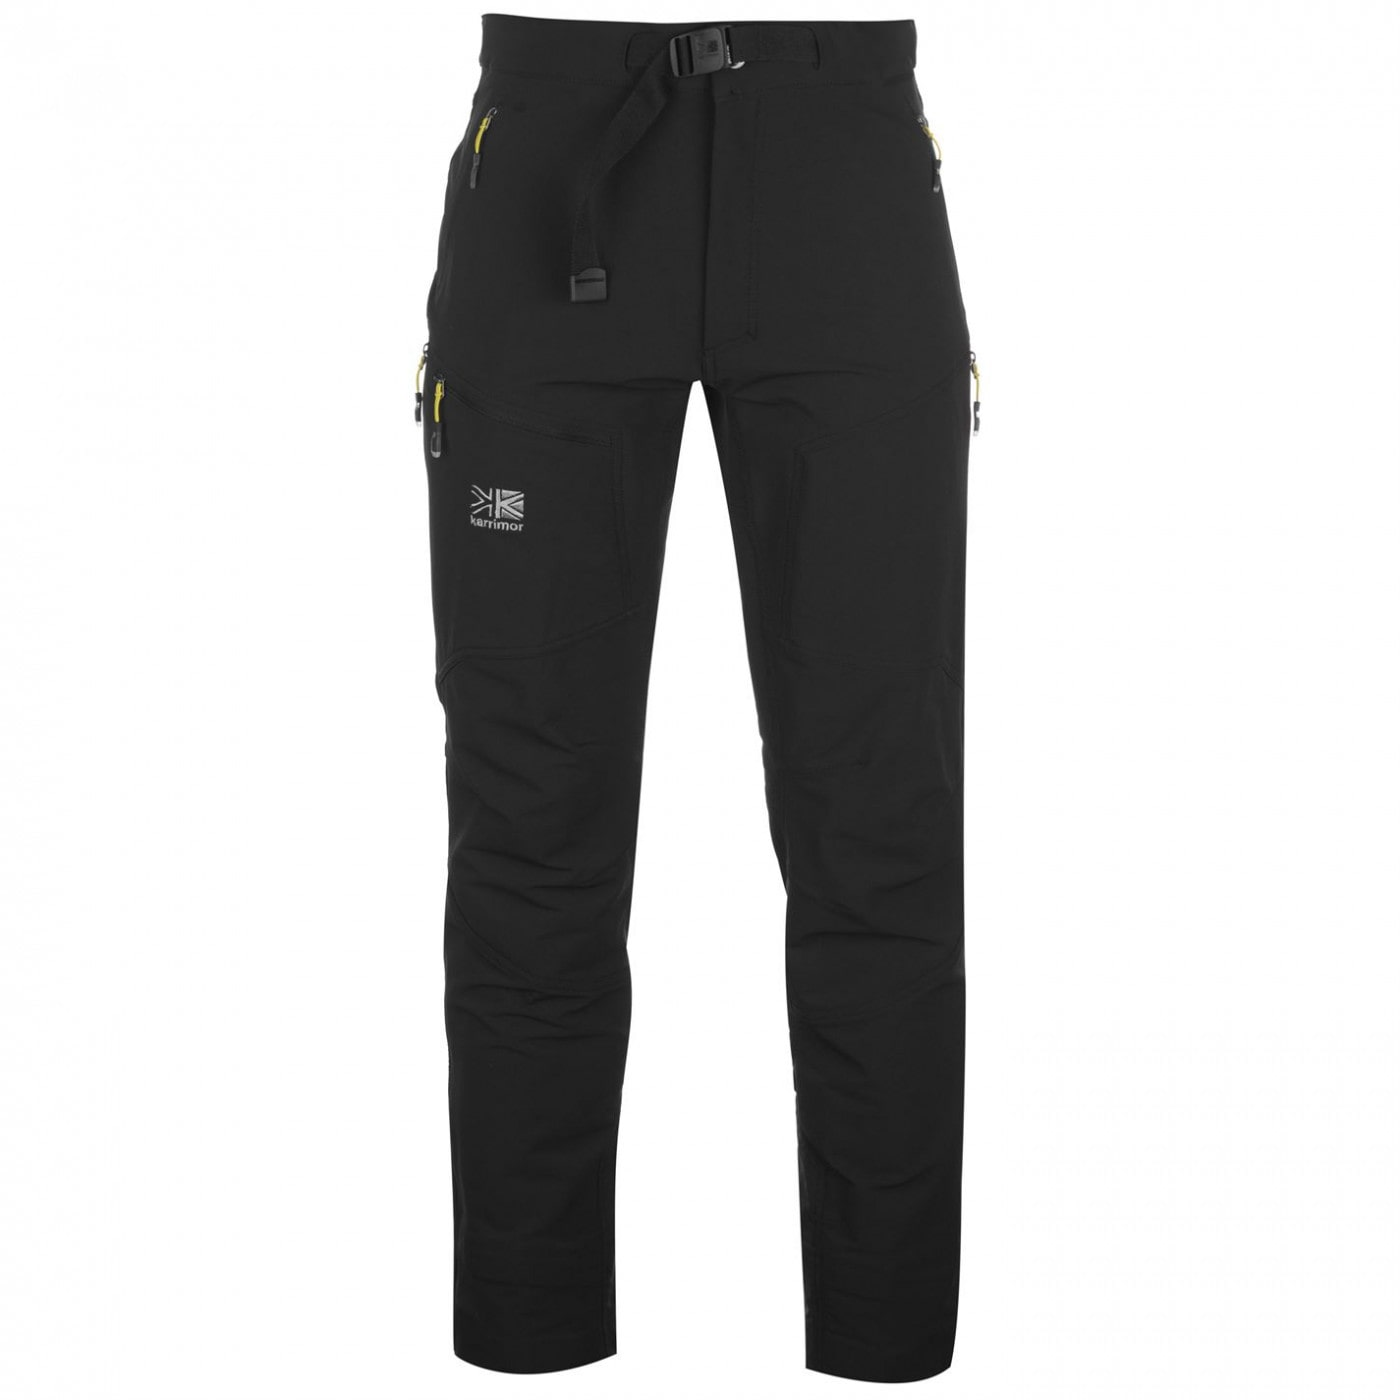 Karrimor Alpiniste Trousers Mens